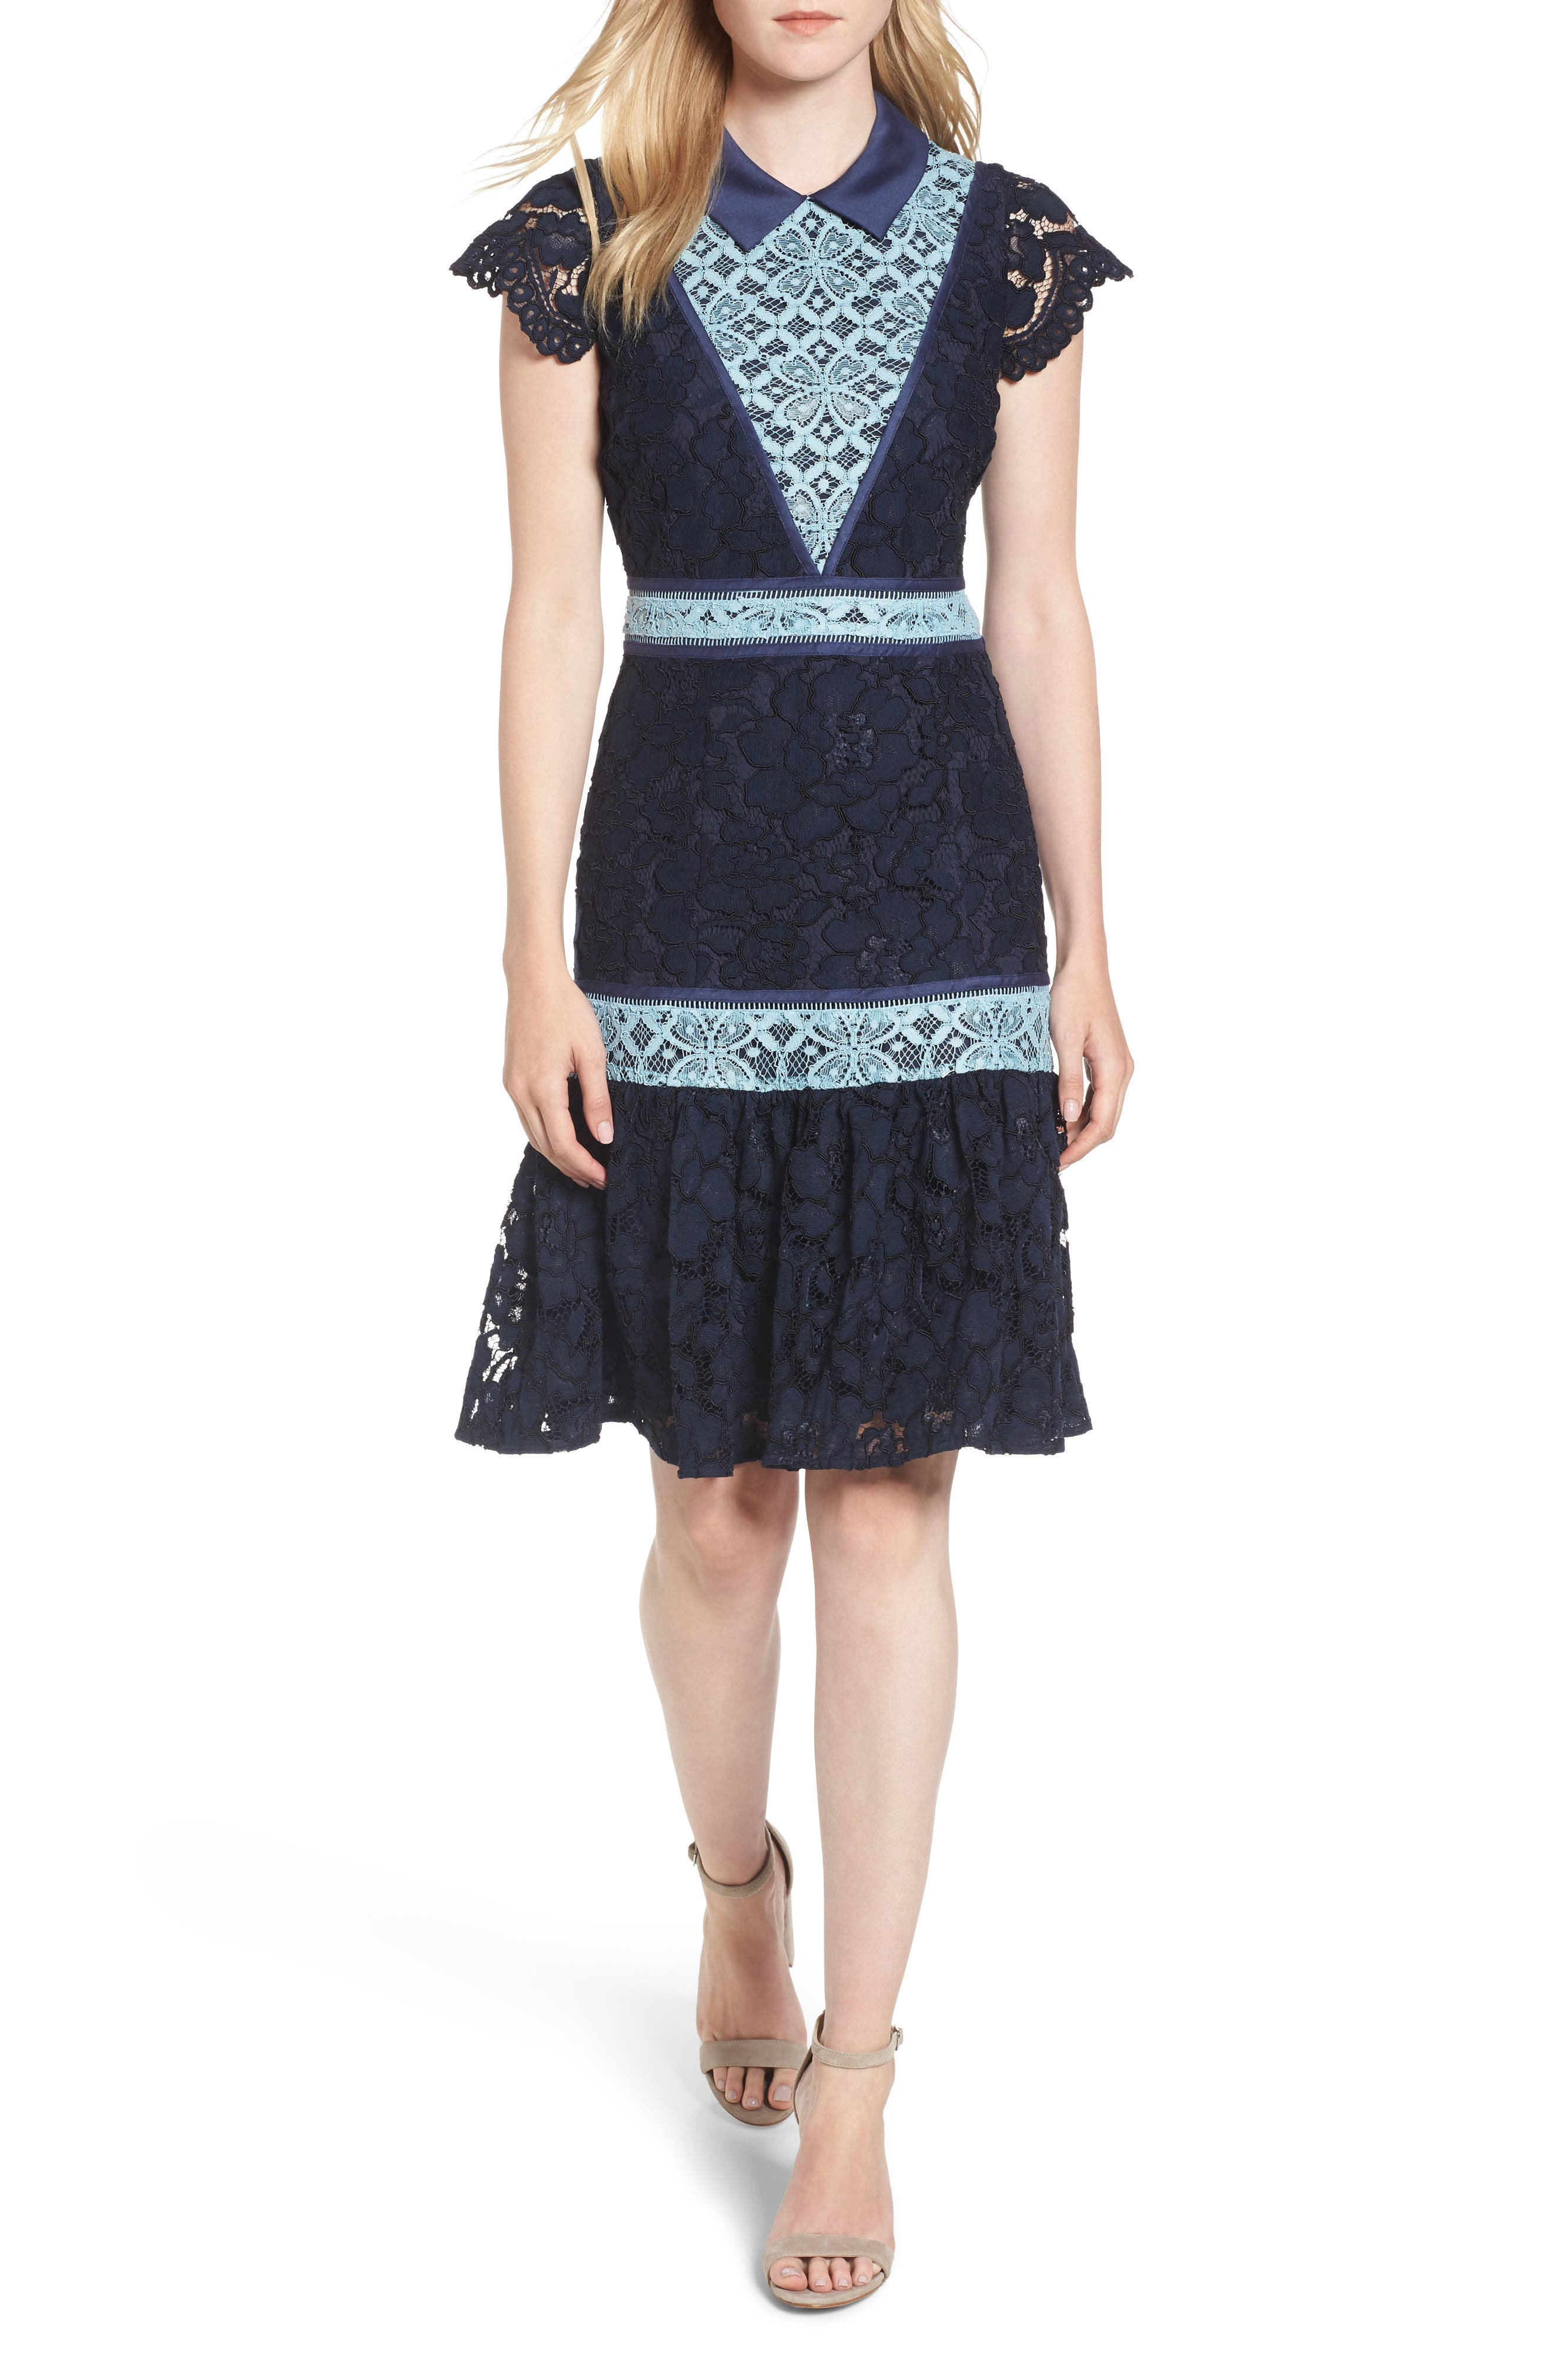 Alternate Image 1 Selected - Draper James Collared Lace Collection A-Line Dress